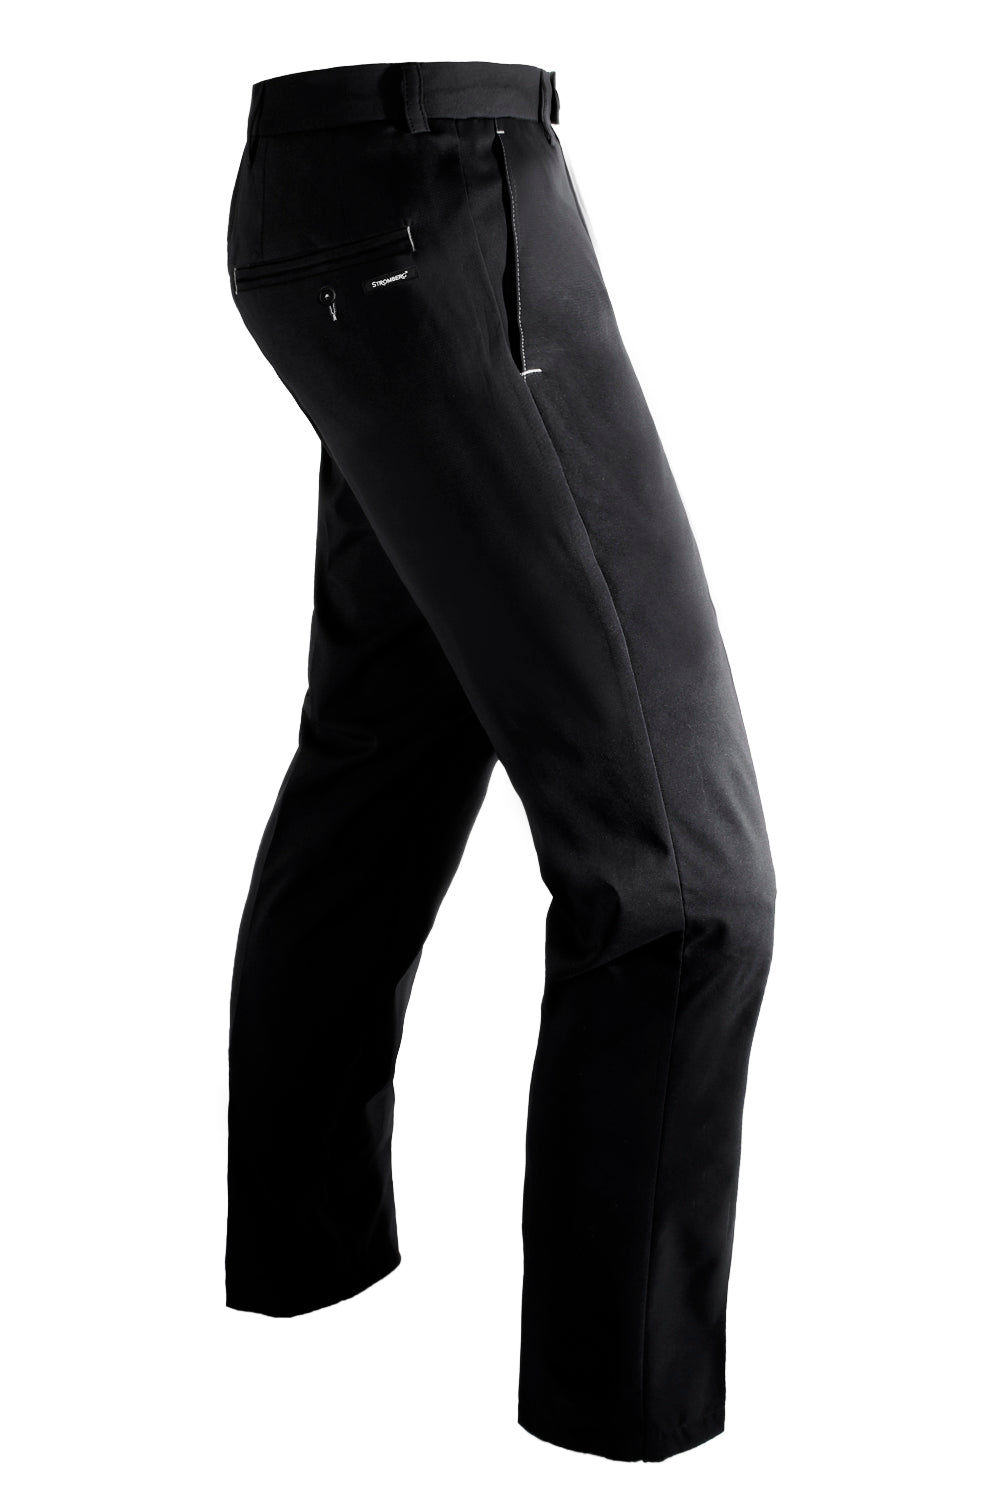 Weather-Lite 1.0 - Black - WeatherTECH - Water Resistant Trouser - Tapered Leg